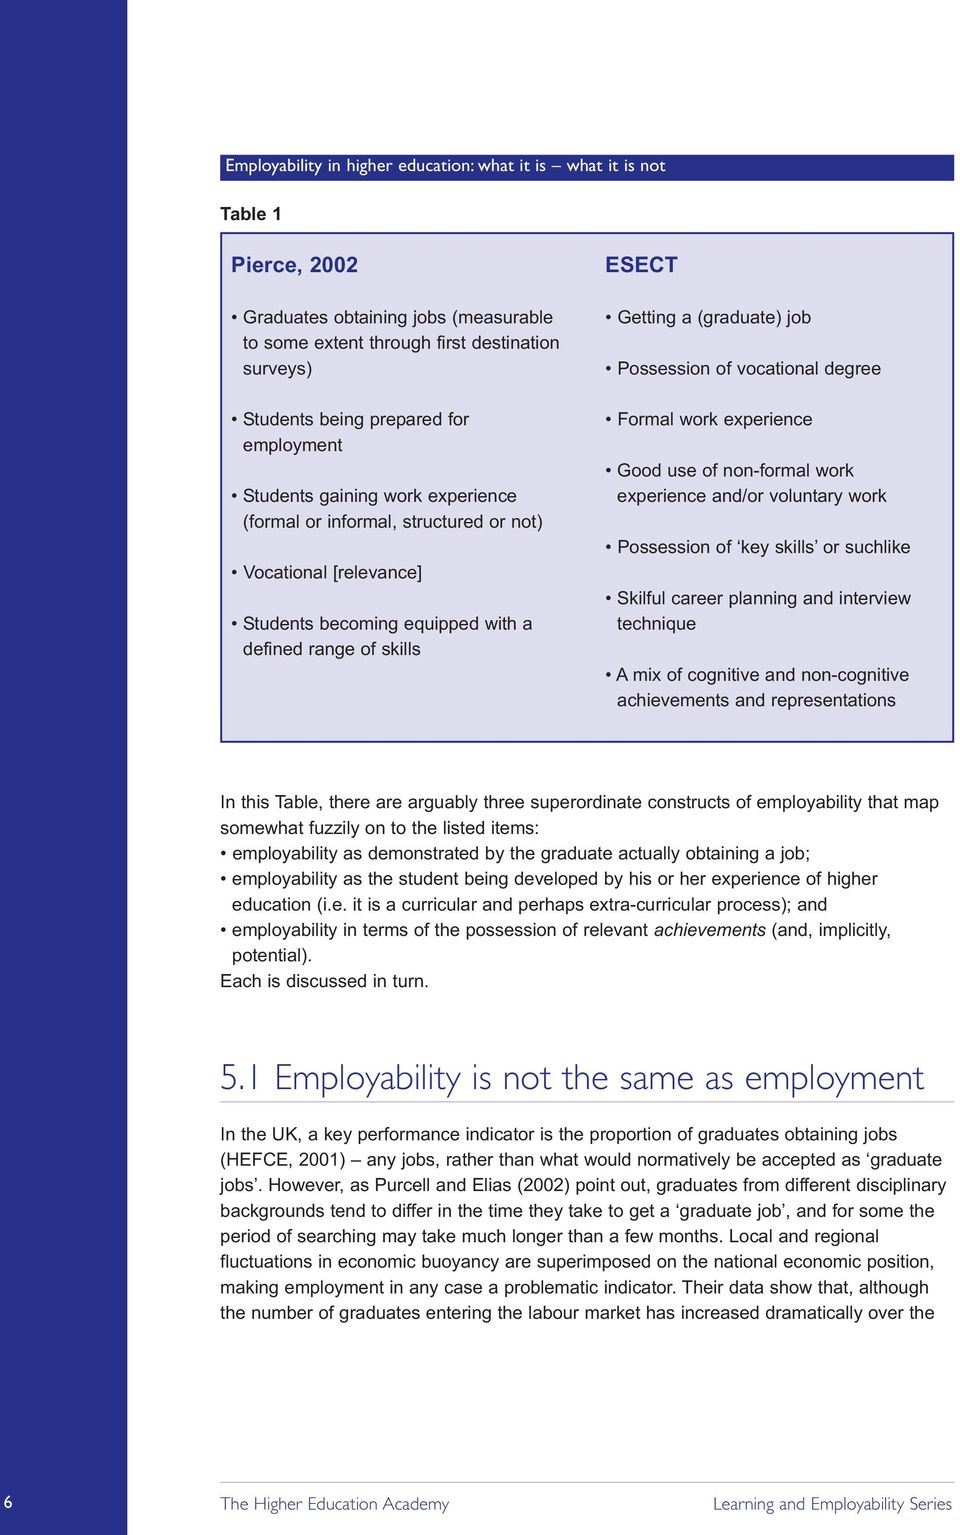 Good use of non-formal work experience and/or voluntary work Possession of key skills or suchlike Skilful career planning and interview technique A mix of cognitive and non-cognitive achievements and